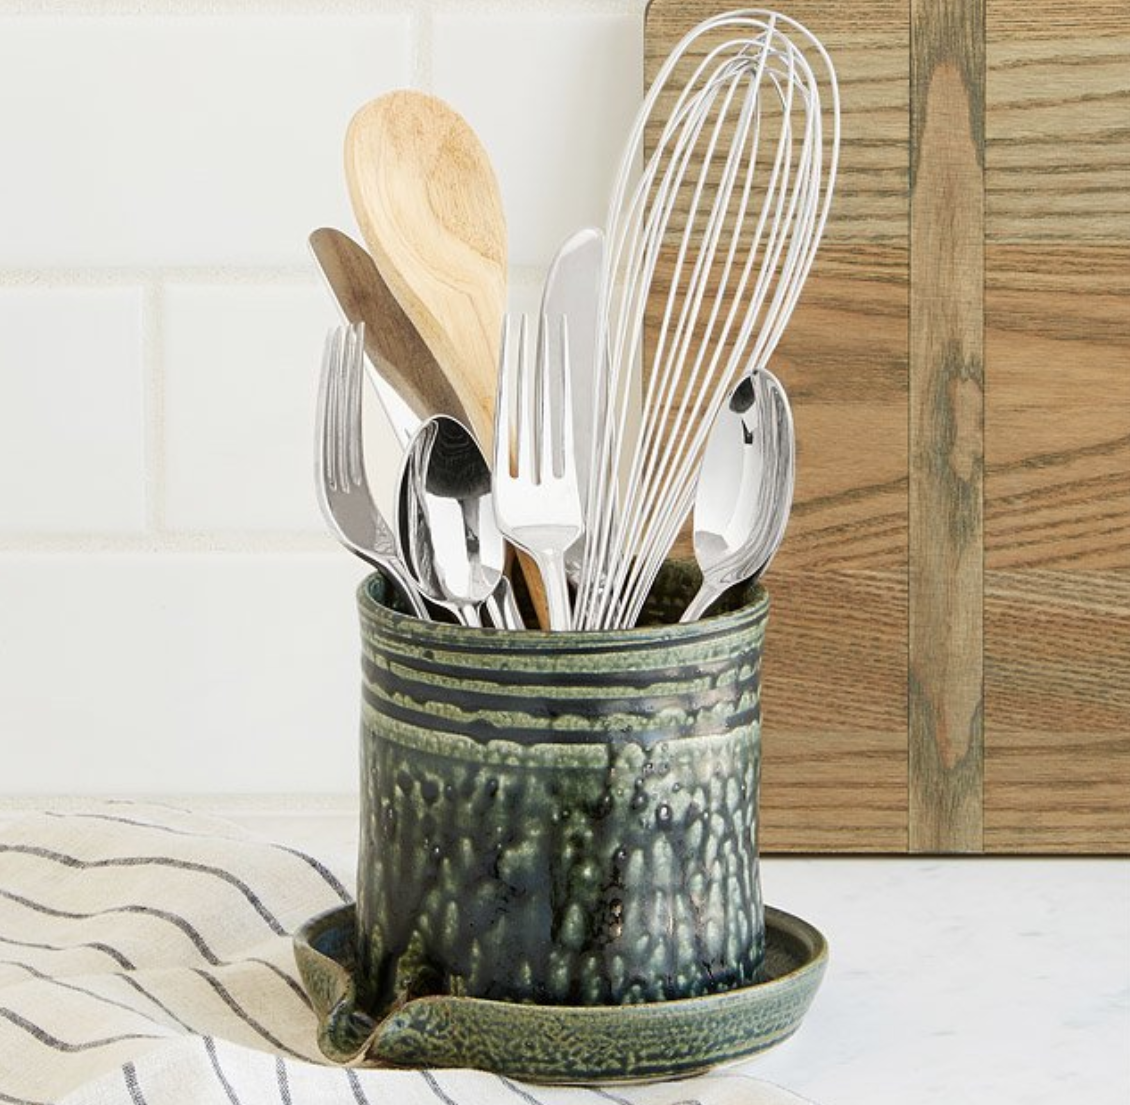 A handy utensil caddy that drains your freshly cleaned kitchen tools right into the sink.